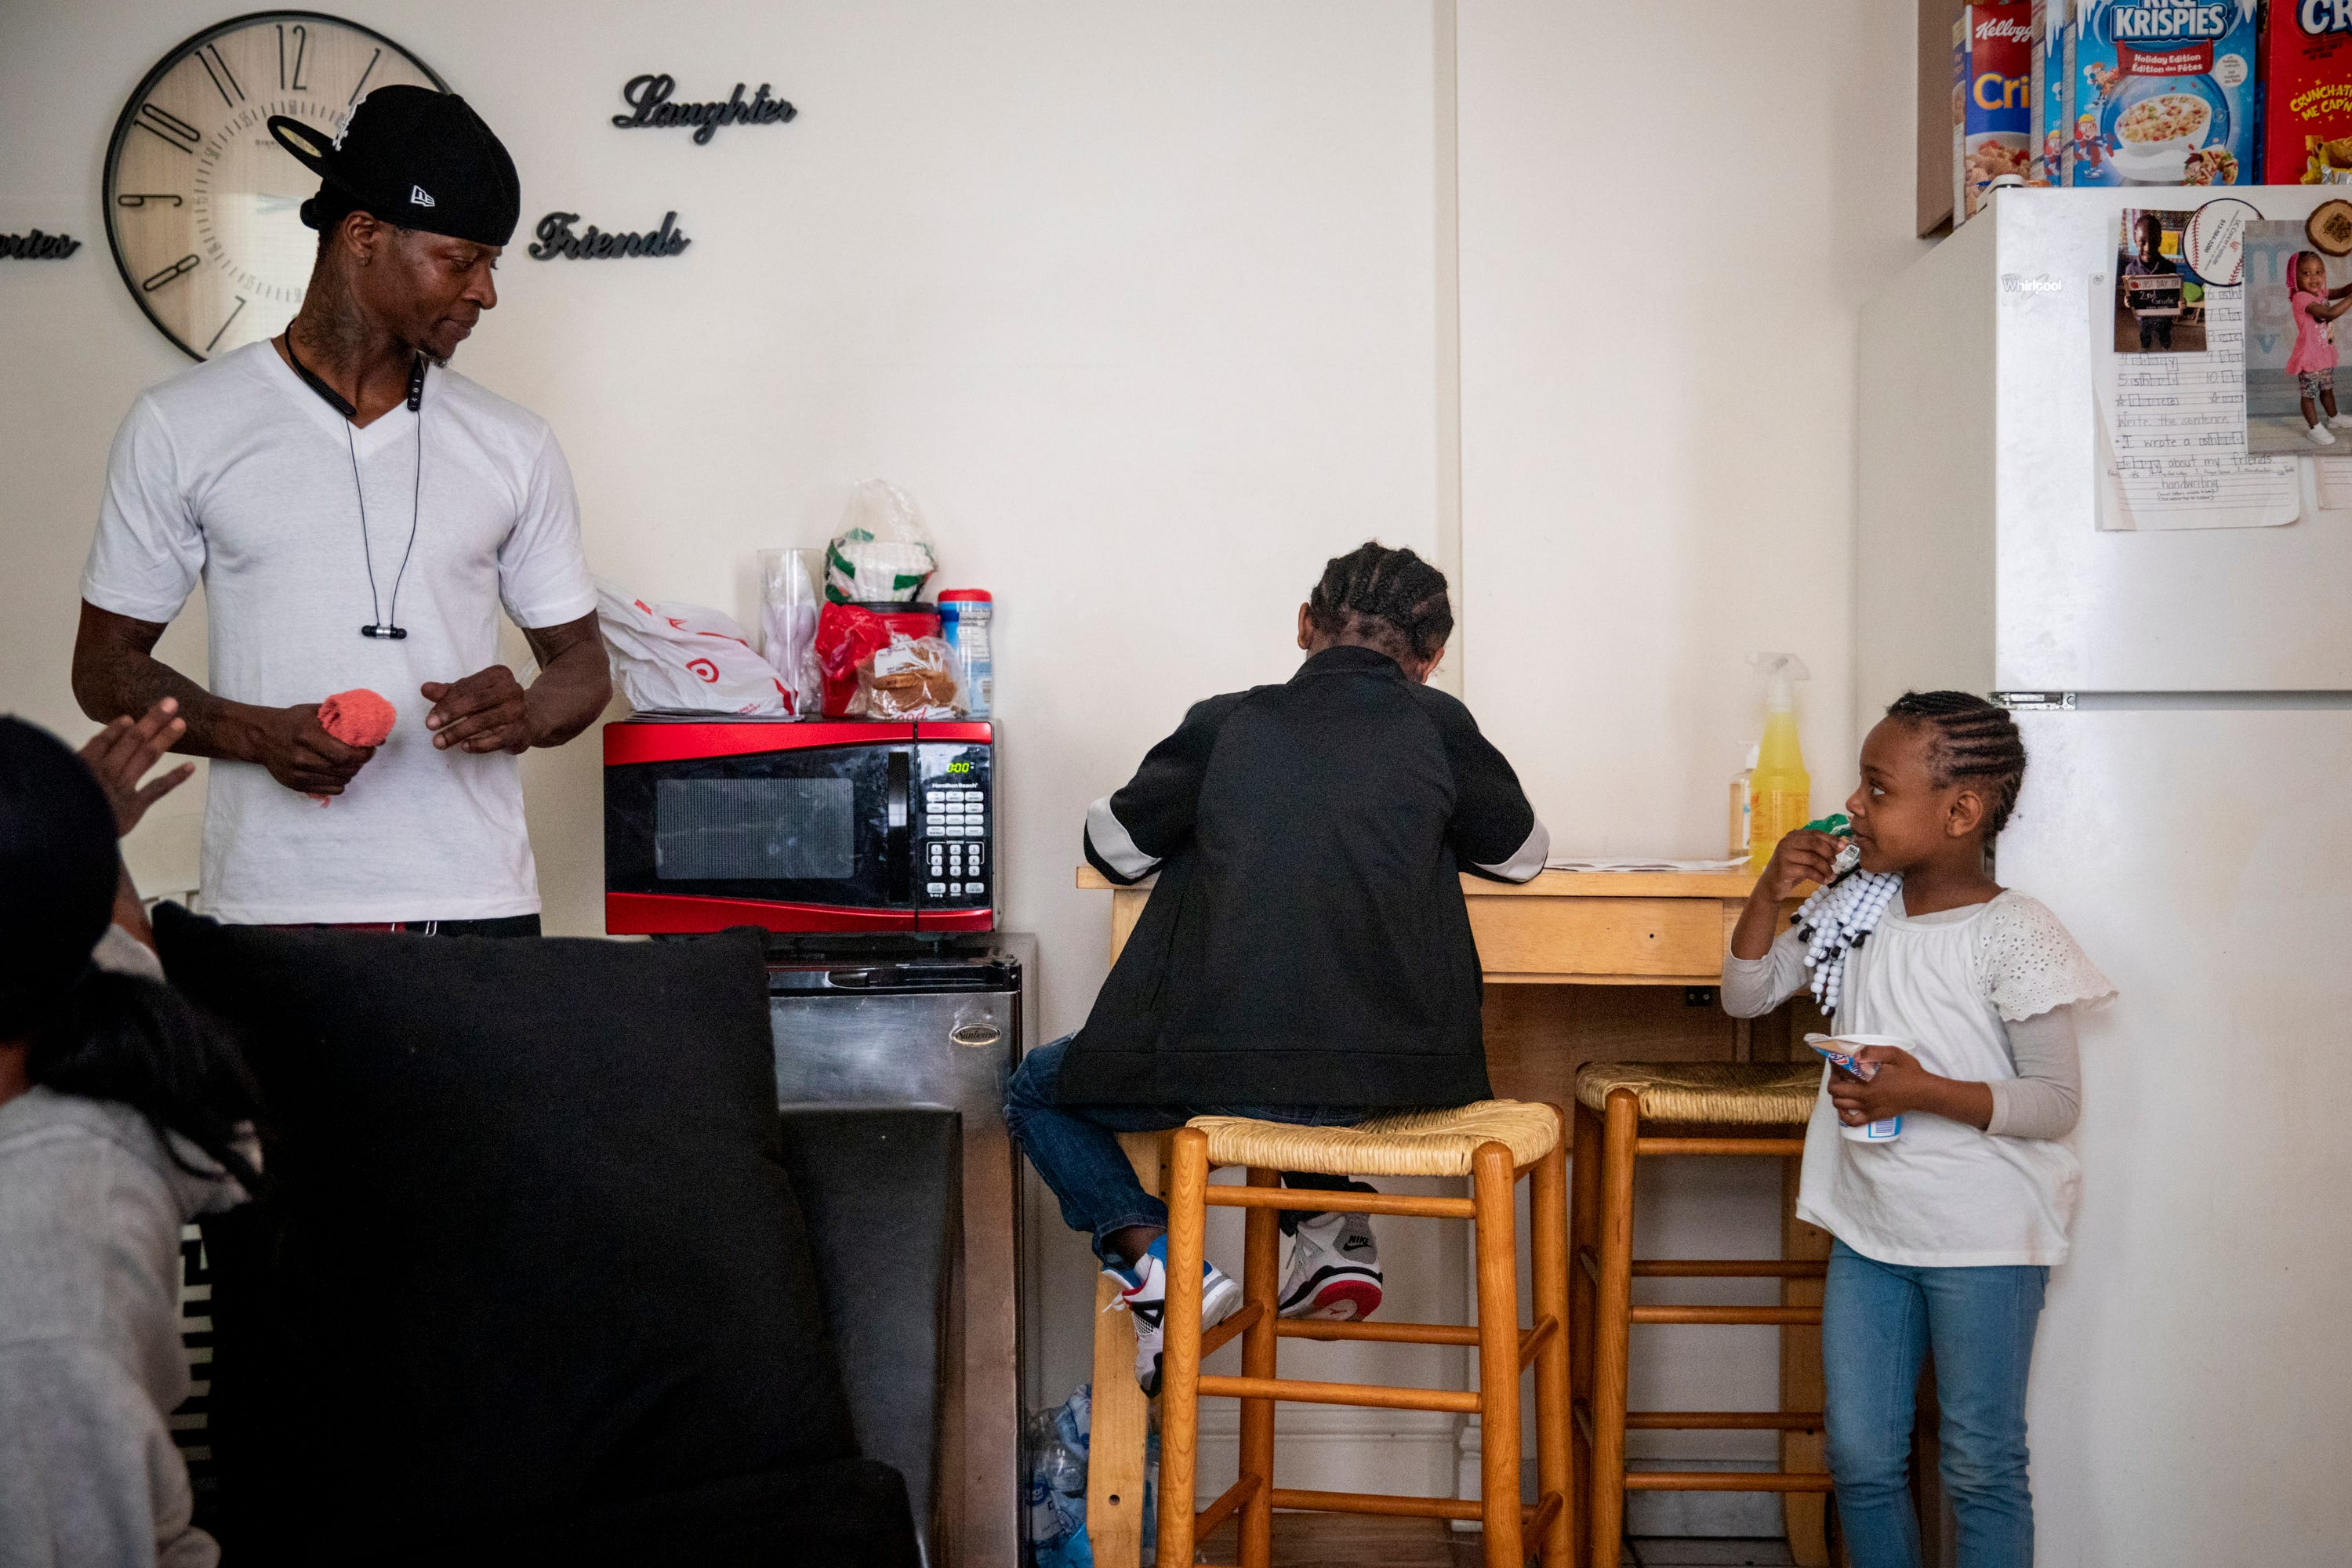 Sinaca Wagoner, Jr. 7, works on his school work while his dad and sister watch in their apartment in Lower Price Hill on Thursday, April 2, 2020. Sinaca Jr. is in the second grade at Cincinnati College Preparatory Academy.